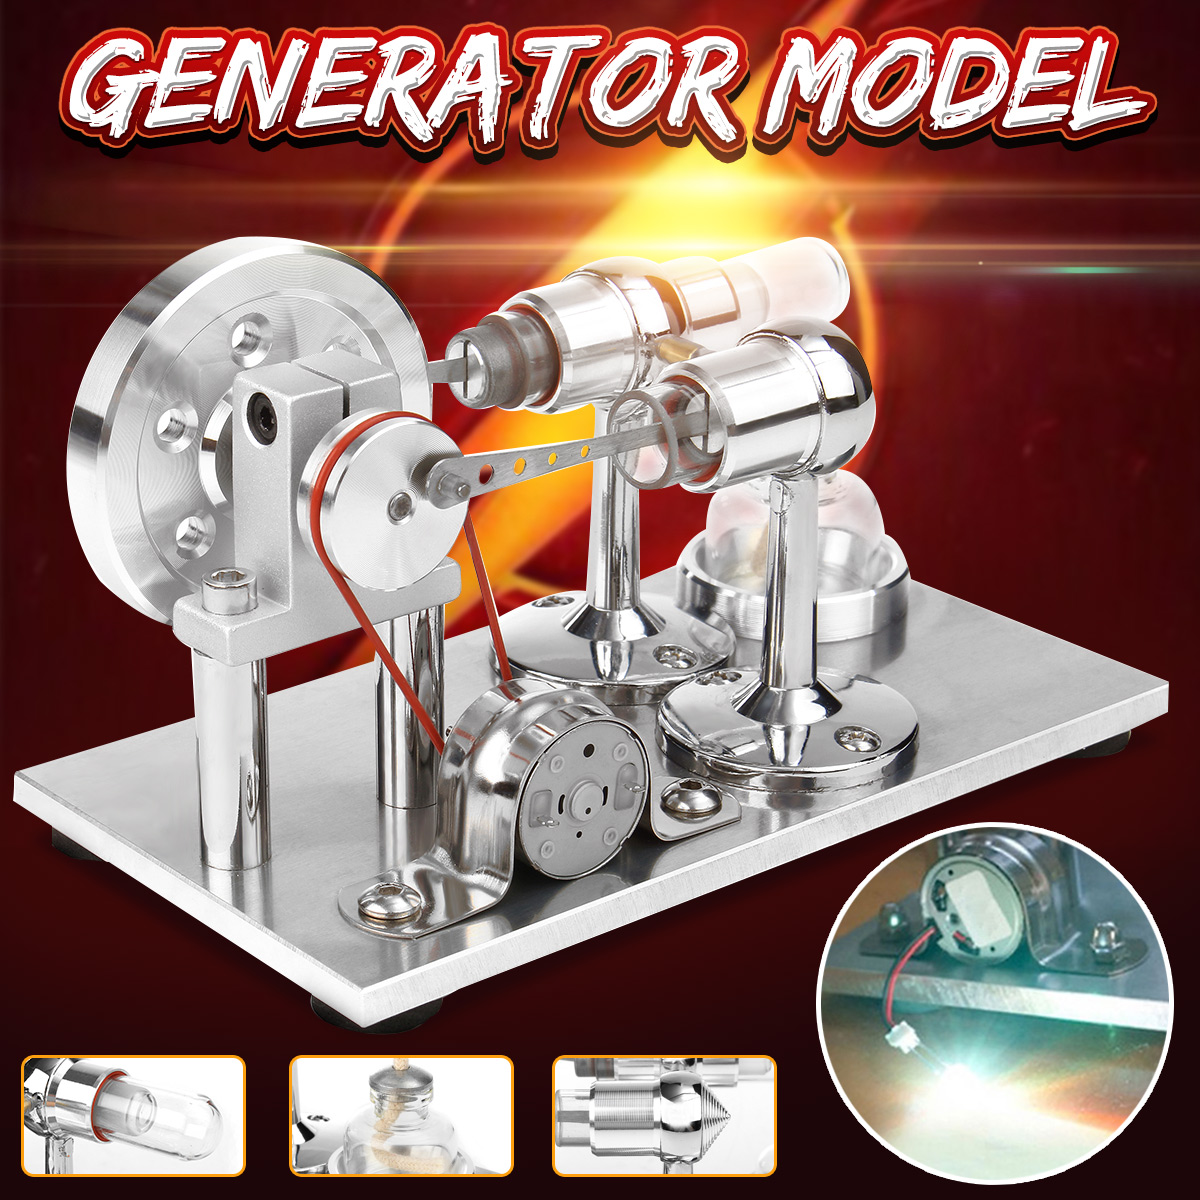 Hot Air Stirling Engine Model Power Generator Motor Educational Steam Power Toy with LED Light + Heating Glass Tube